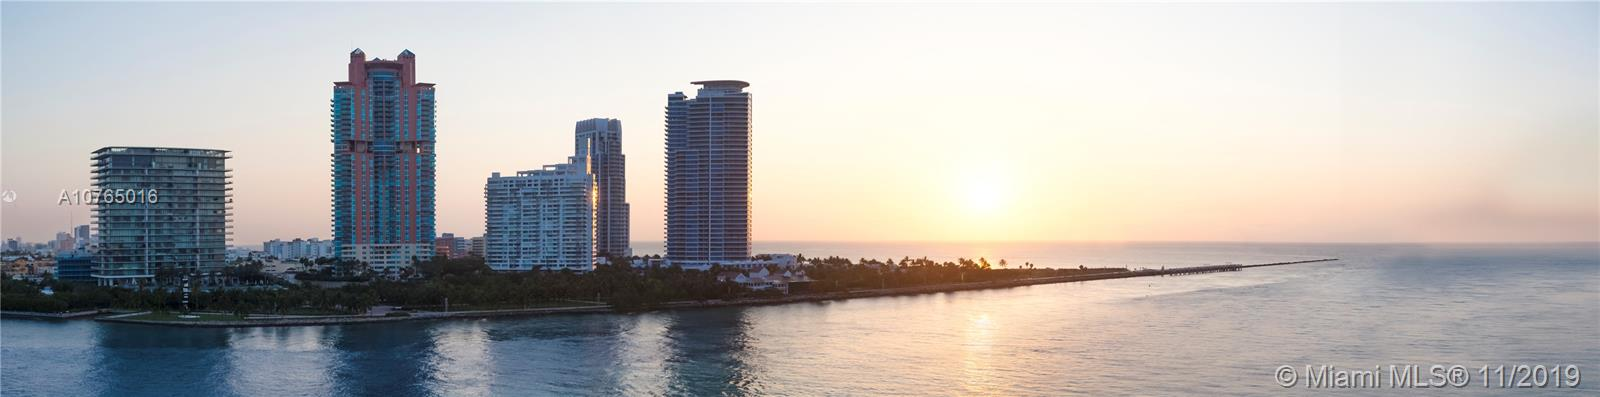 6846 Fisher Island Drive, Unit #6846 Luxury Real Estate